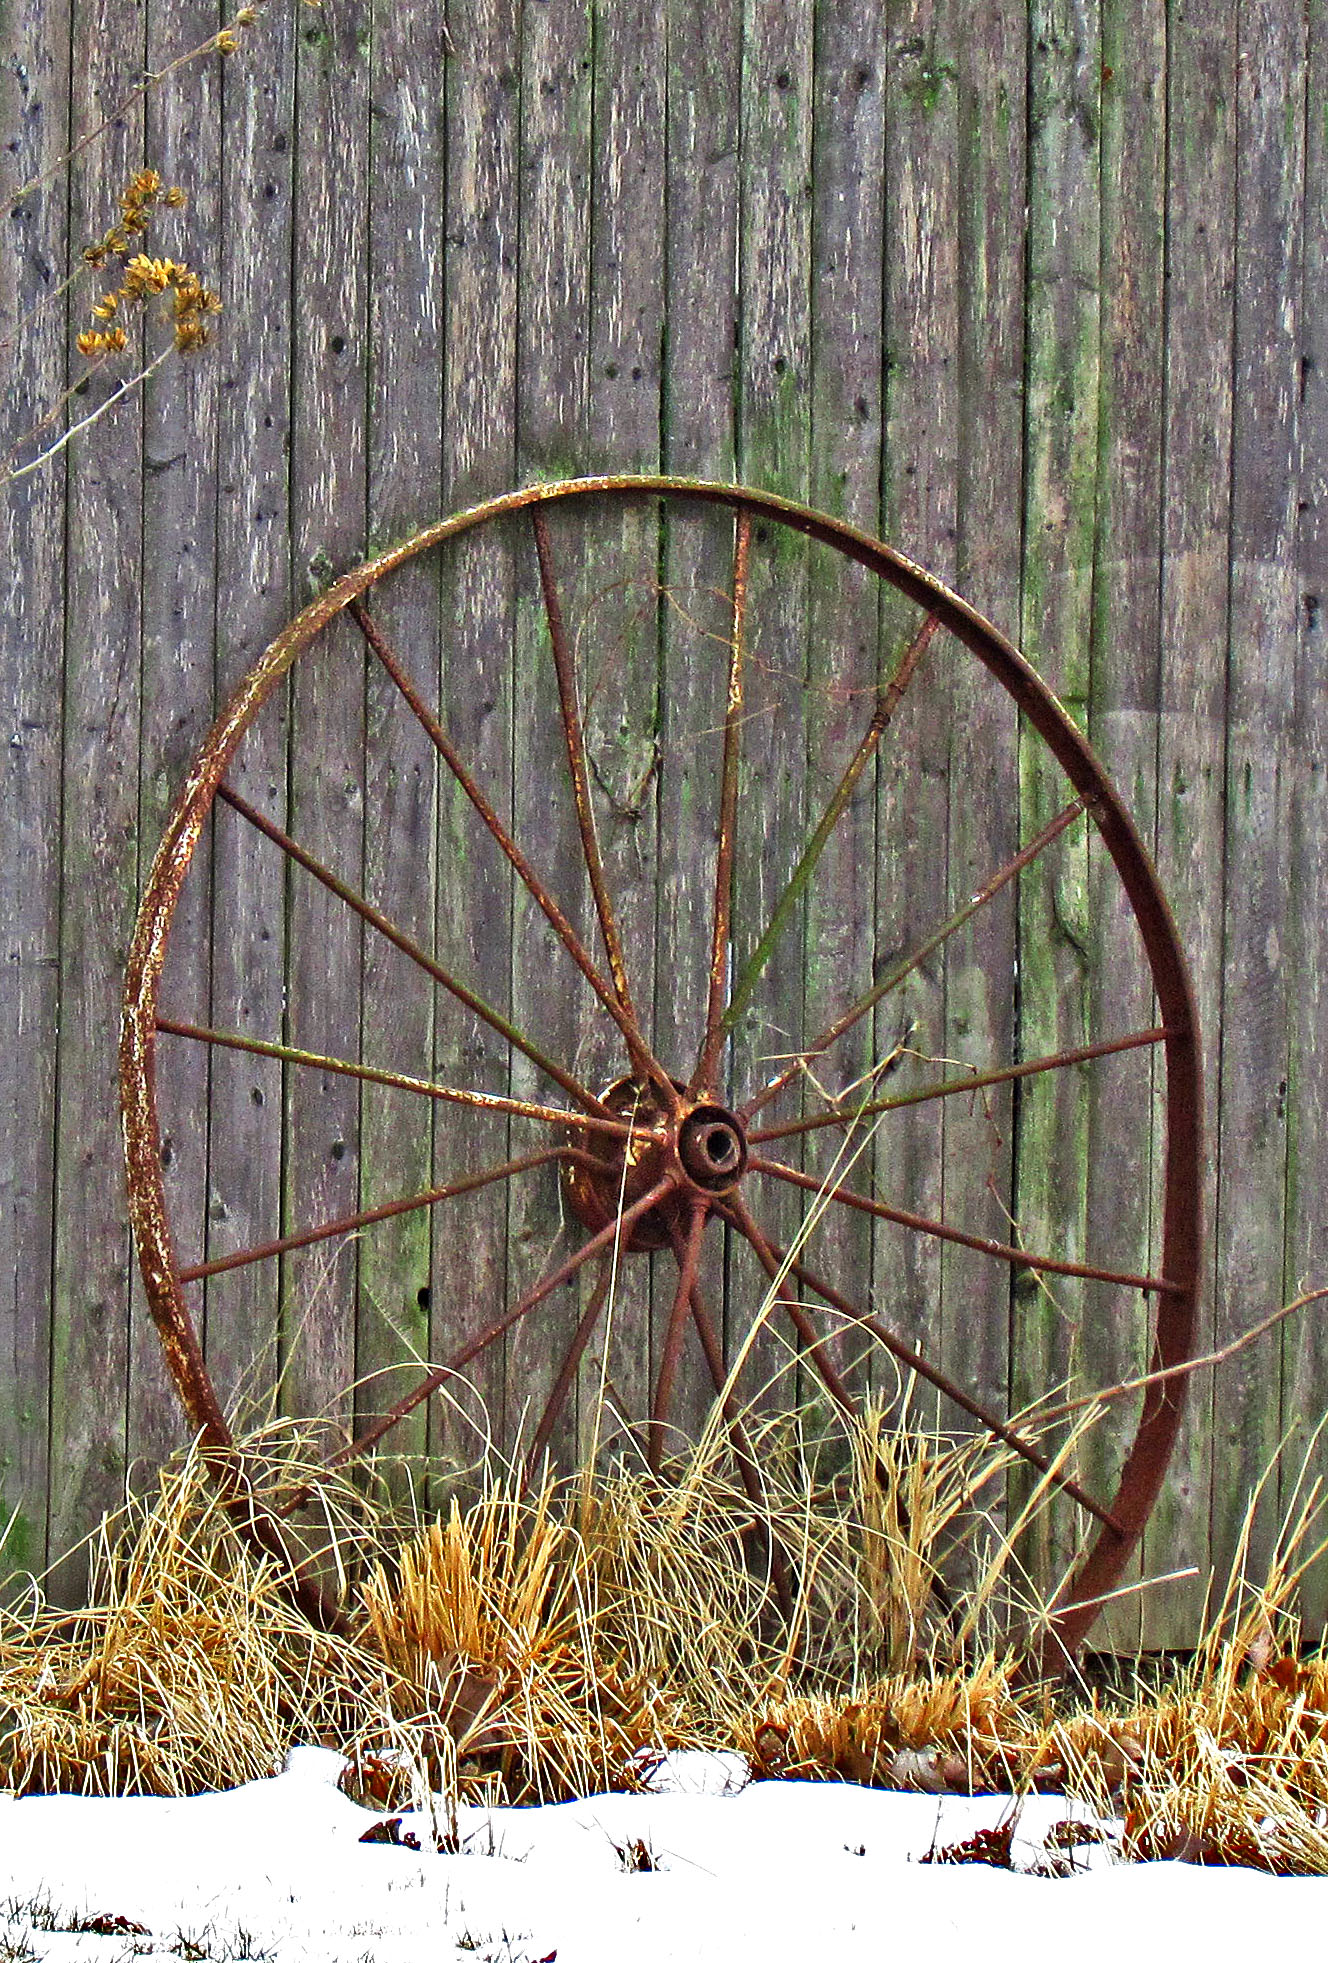 Rusty Big Wheel